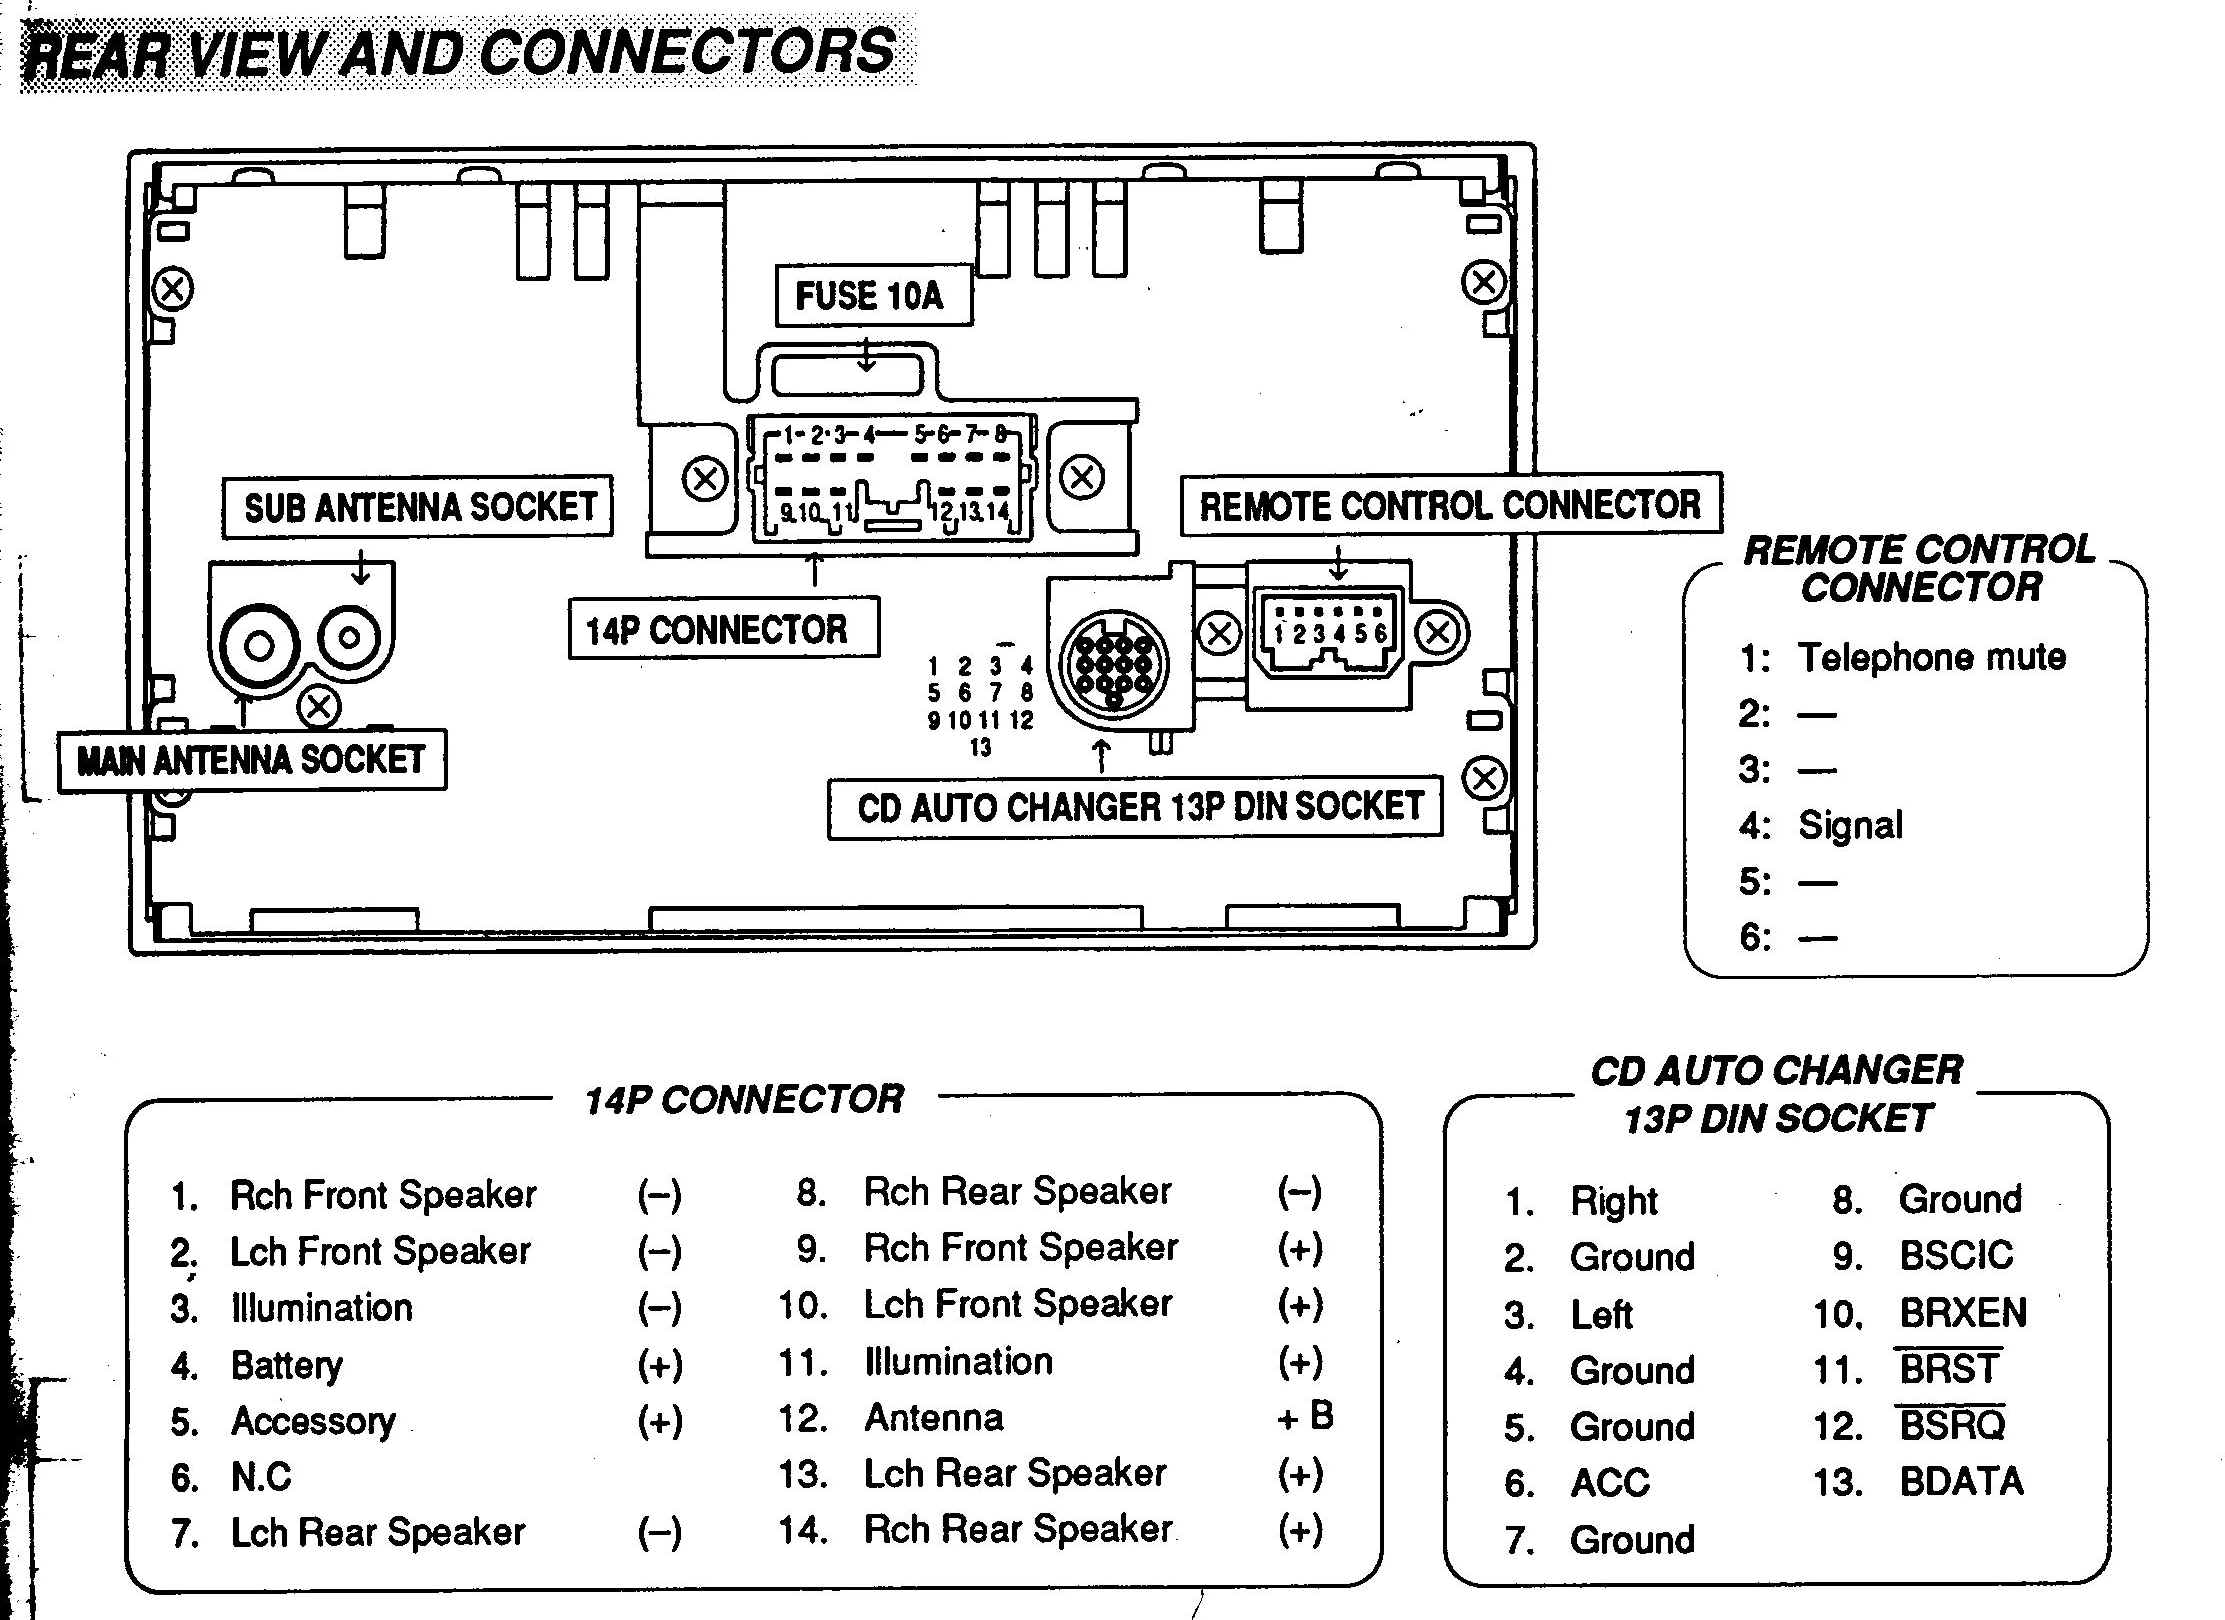 1994 Jeep Wrangler Radio Wiring Color | Wiring Diagram Chrysler Radio Wiring Diagrams on 96 town country heater diagram, chrysler pacifica parts diagram, chrysler repair diagrams, chrysler fuel pump diagram, chrysler radio schematic, pt cruiser electrical diagram, chrysler transmission diagram, chrysler sebring 2.7 engine diagram, chrysler radio wire colors, chrysler wiring schematics, chrysler infinity 36670 speakers, 2002 pt cruiser starter diagram, 2006 chrysler pacifica radiator diagram, chrysler dash lights diagram, 2013 chrysler 200 radio diagram, chrysler sebring parts diagram, chrysler radio guide, chrysler pacifica wiring-diagram, chrysler 3.3 engine diagram, chrysler fuse diagram,